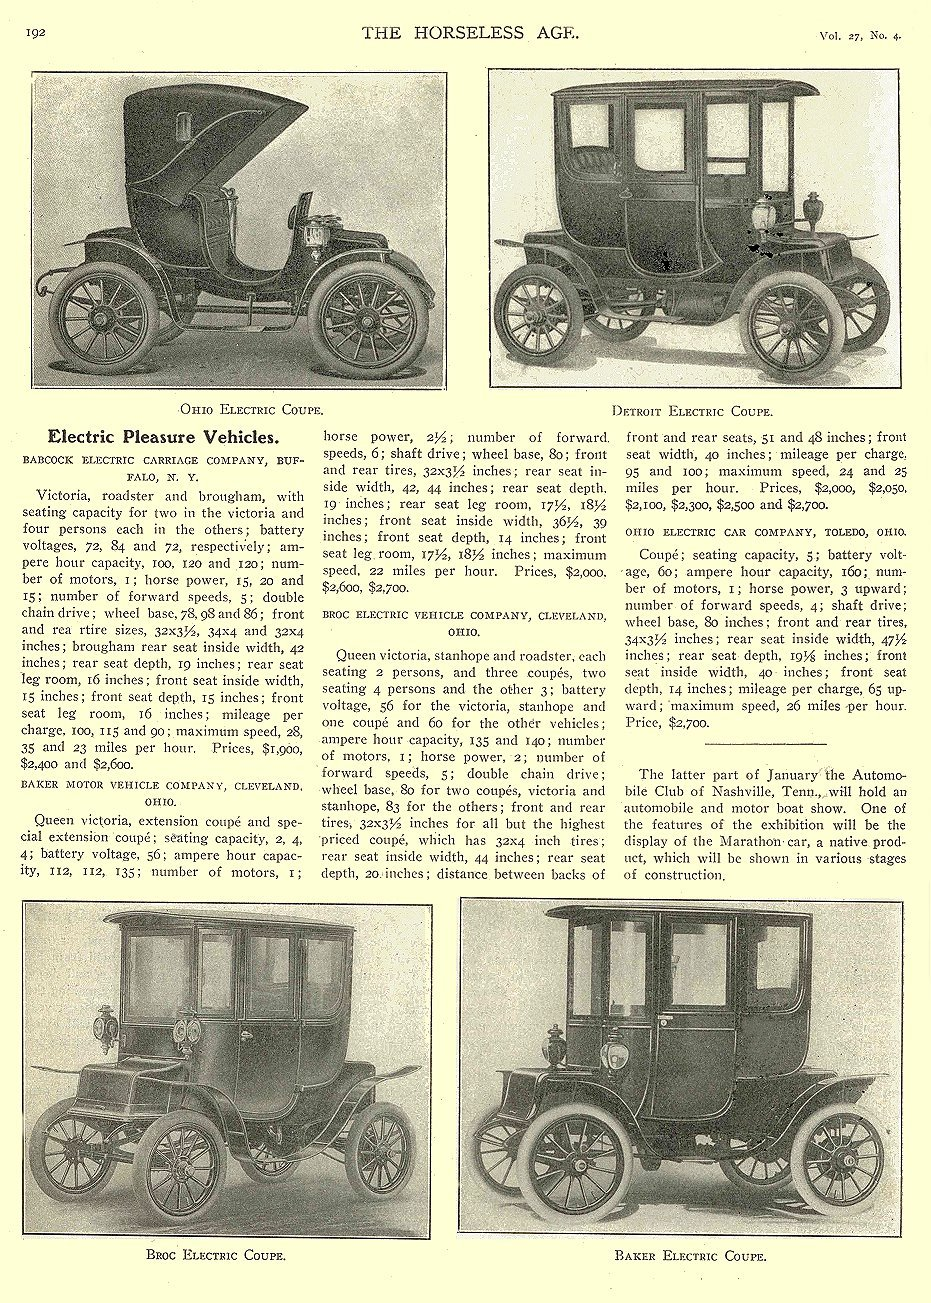 1911 1 25 BROC Electric Article Electric Pleasure Vehicles Broc Electric Coupe THE HORSELESS AGE January 25, 1911 University of Minnesota Library 8.25″x11.5″ page 192